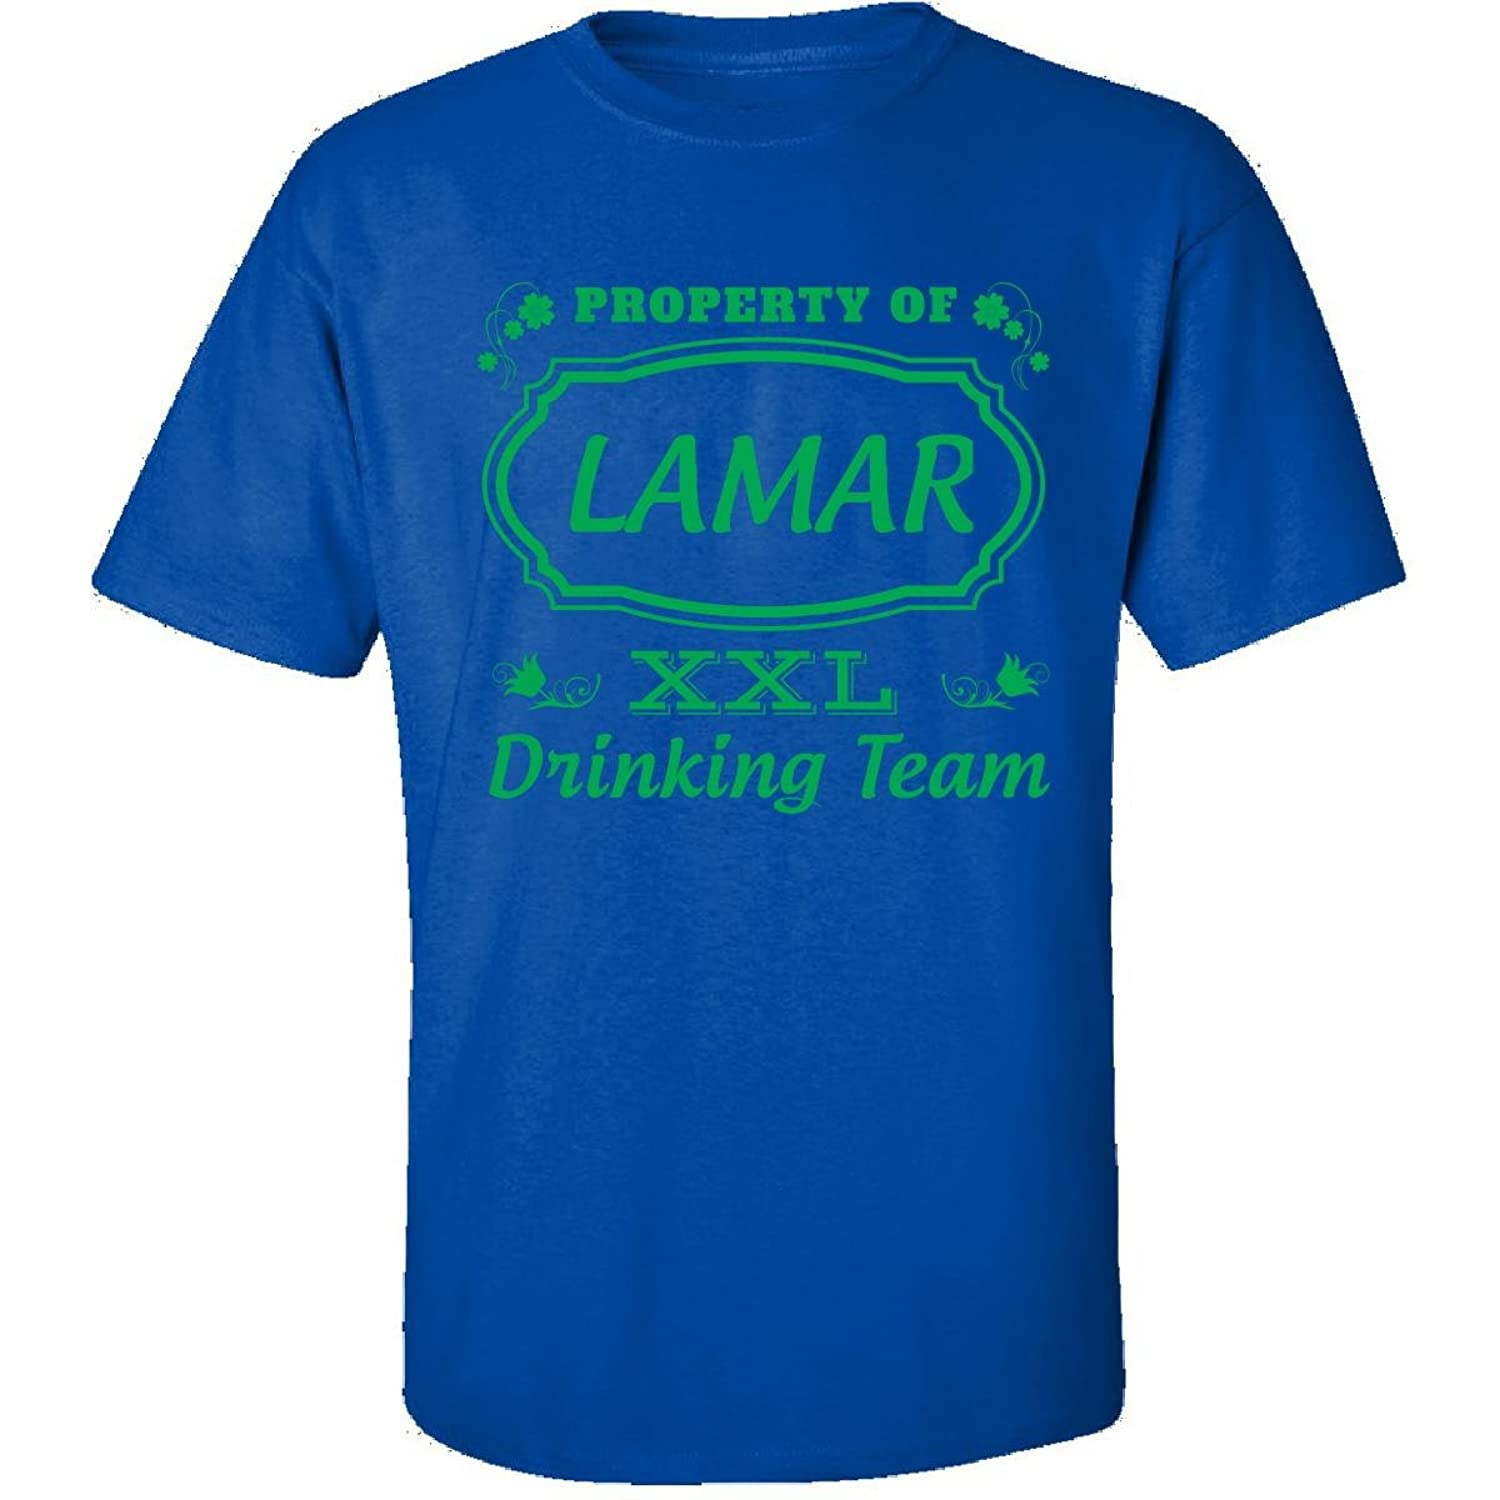 Property Of Lamar St Patrick Day Beer Drinking Team - Adult Shirt